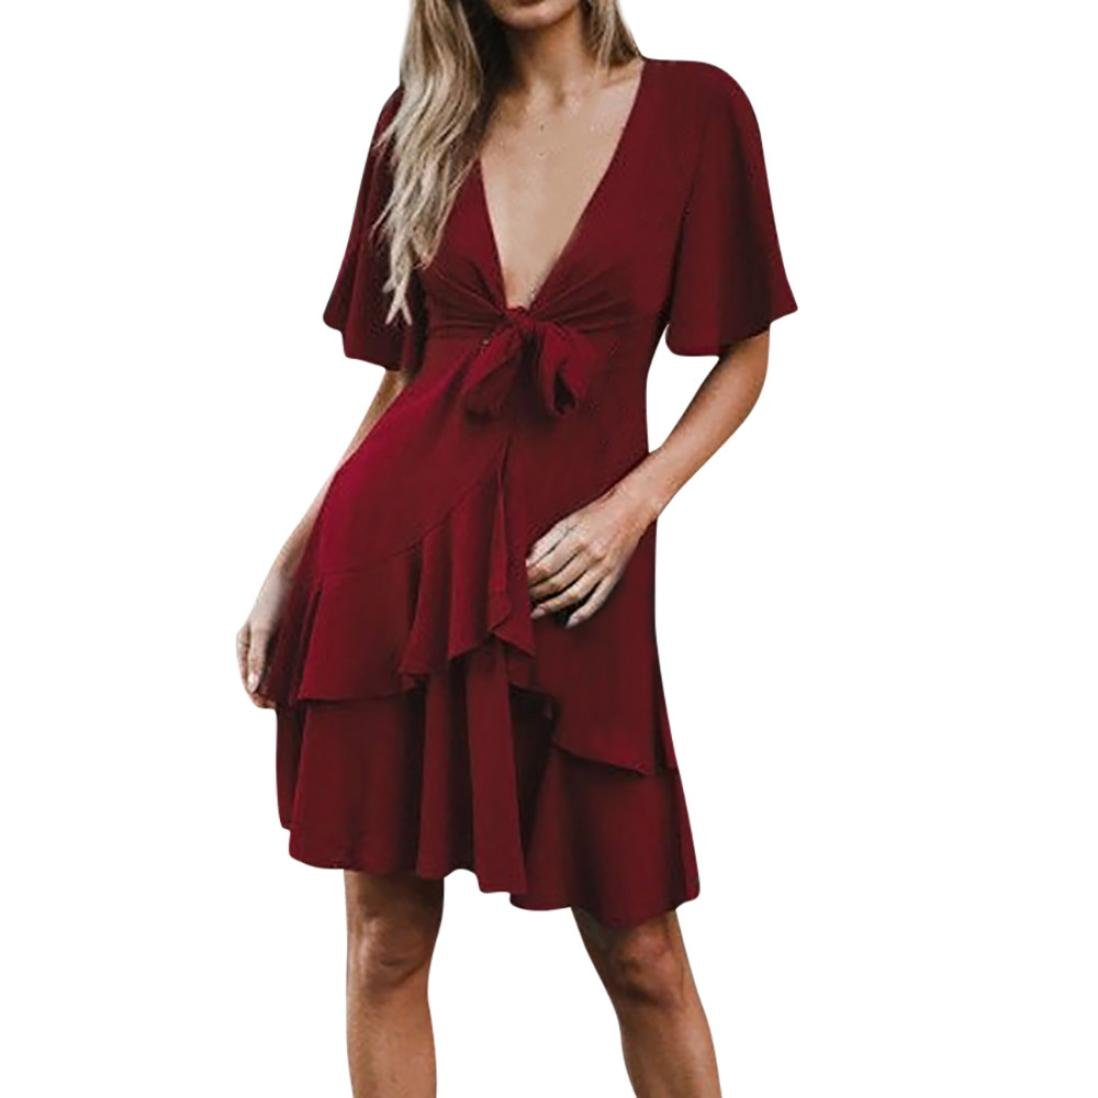 Rambling Clearance Sale 2018 Hot Style Short Sleeve Holiday Solid Dress Ladies Lotus Leaf Bowknot Party Dress